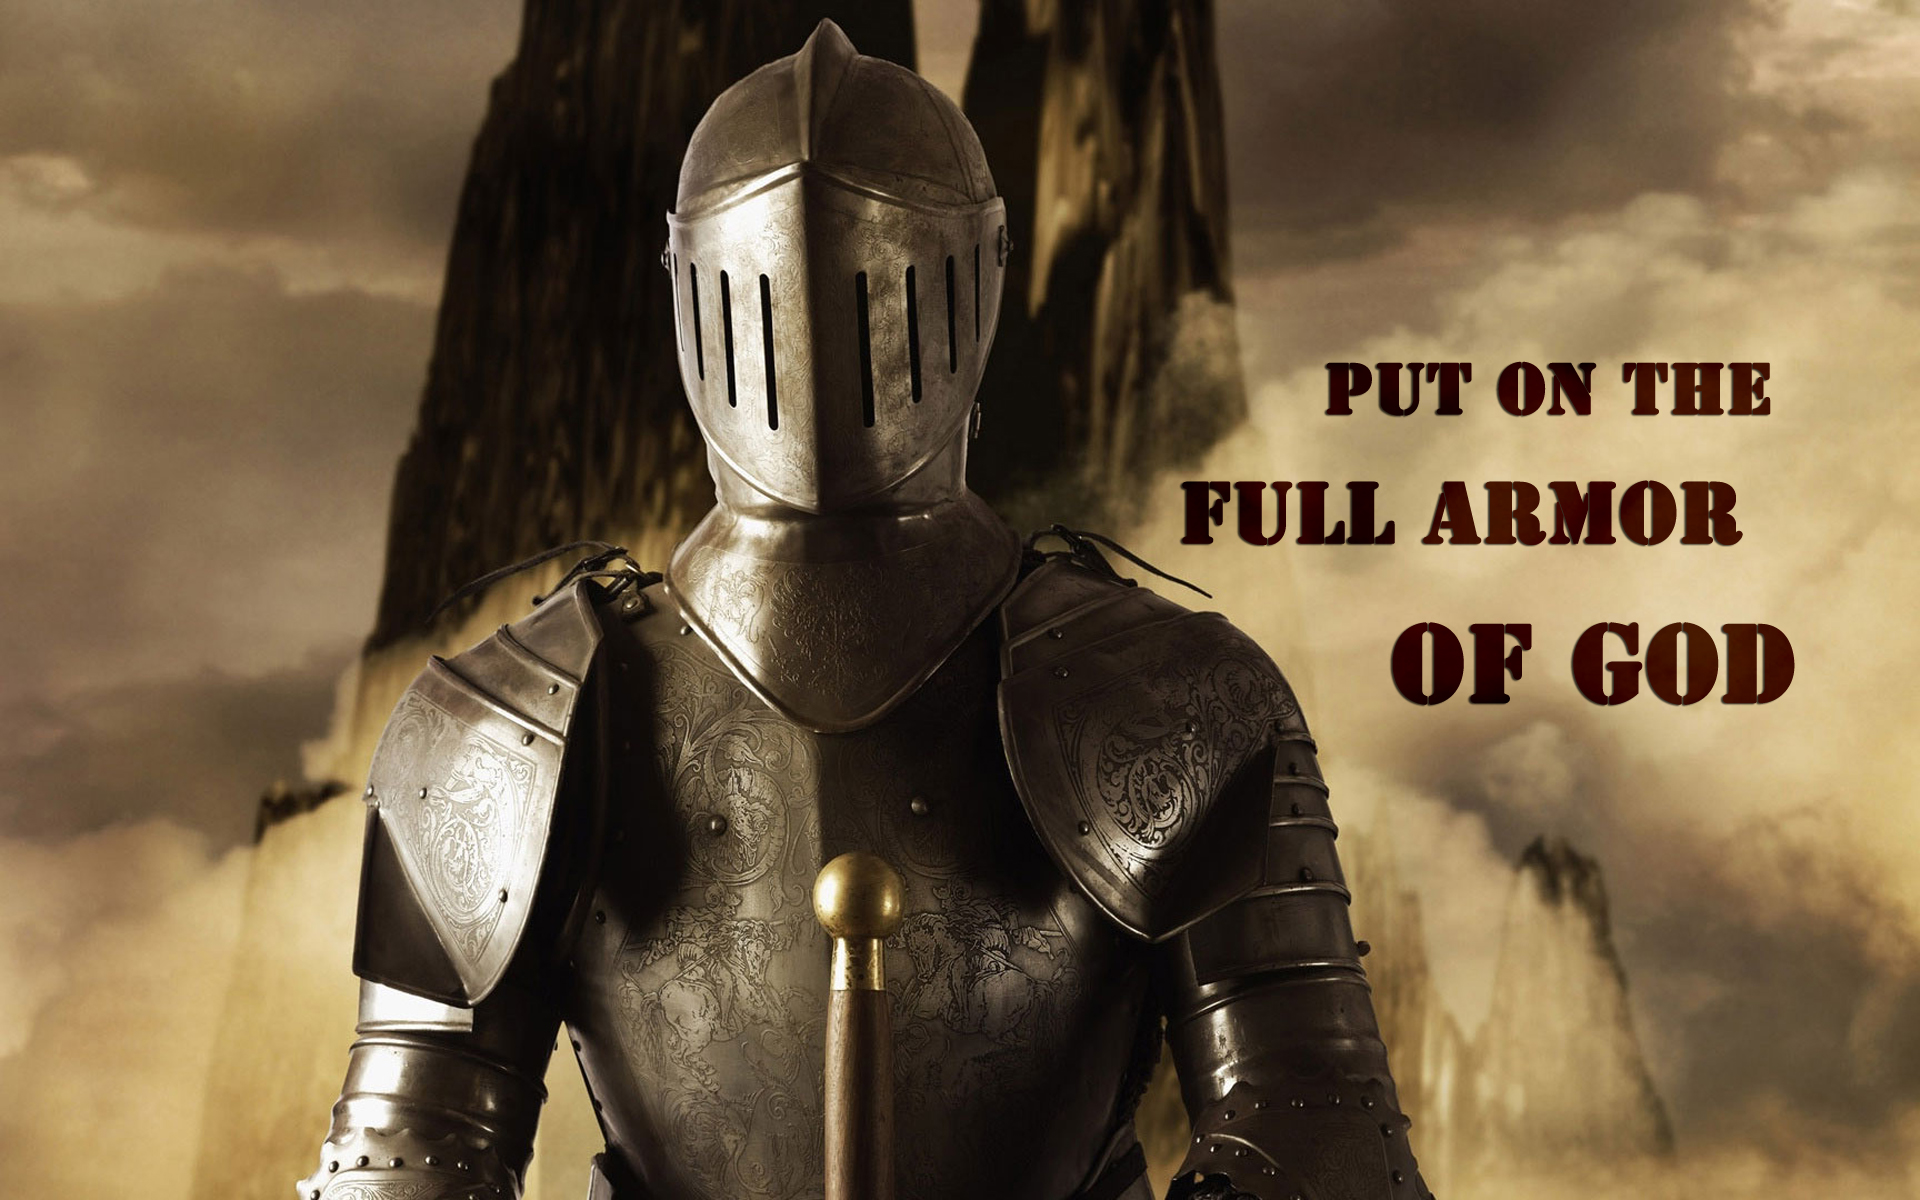 Armor of god christian wallpapers - Armor of god background ...